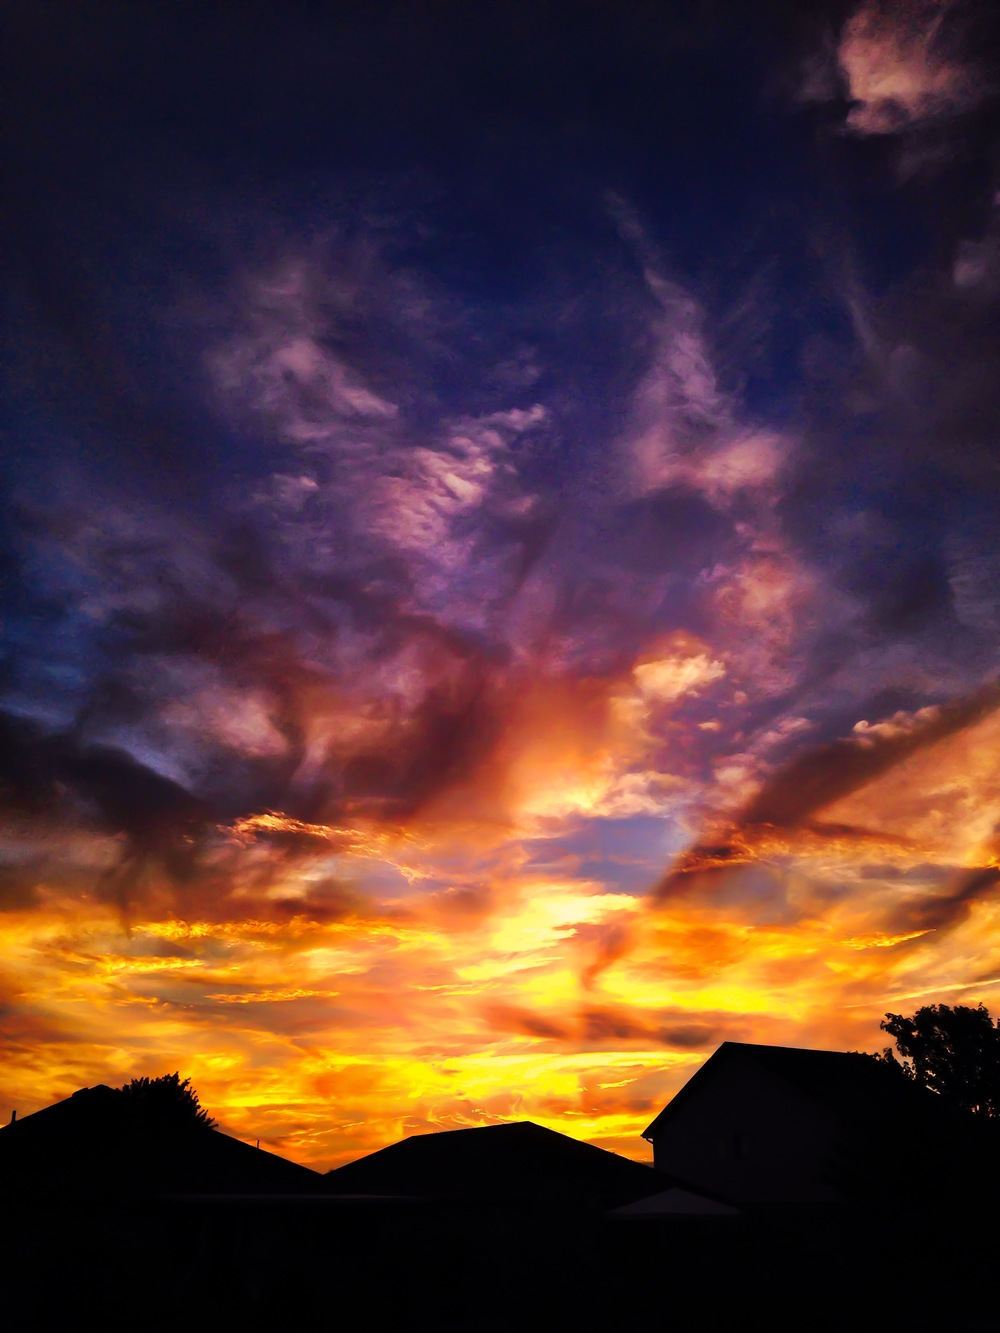 Fire Sky and Suburban Silhouette